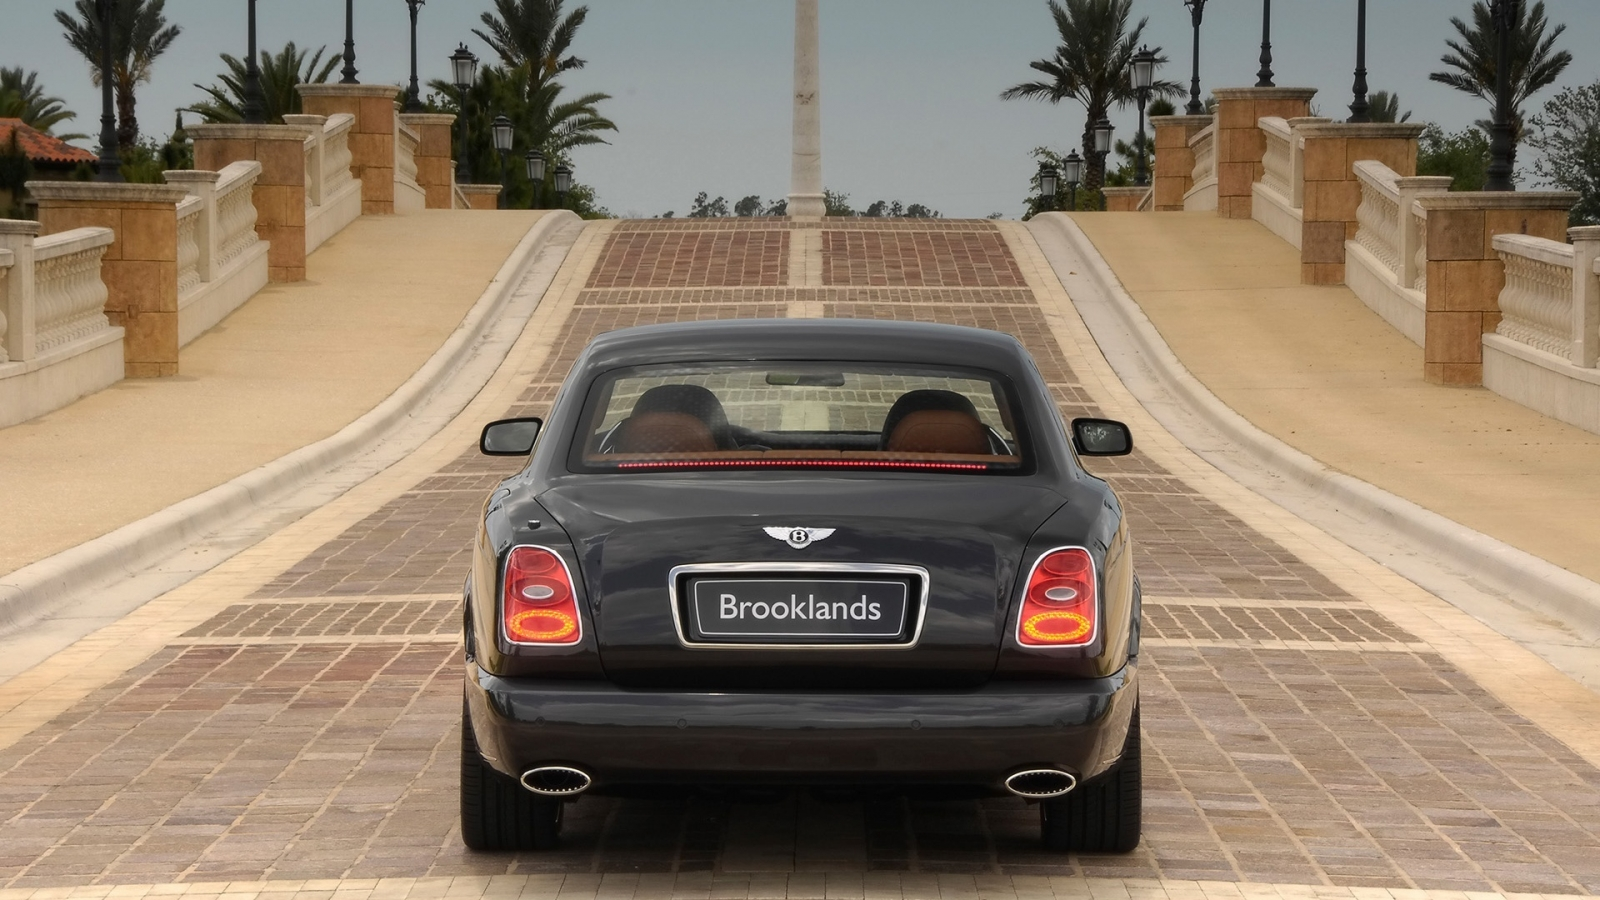 Bentley Brooklands Rear 2008 for 1600 x 900 HDTV resolution